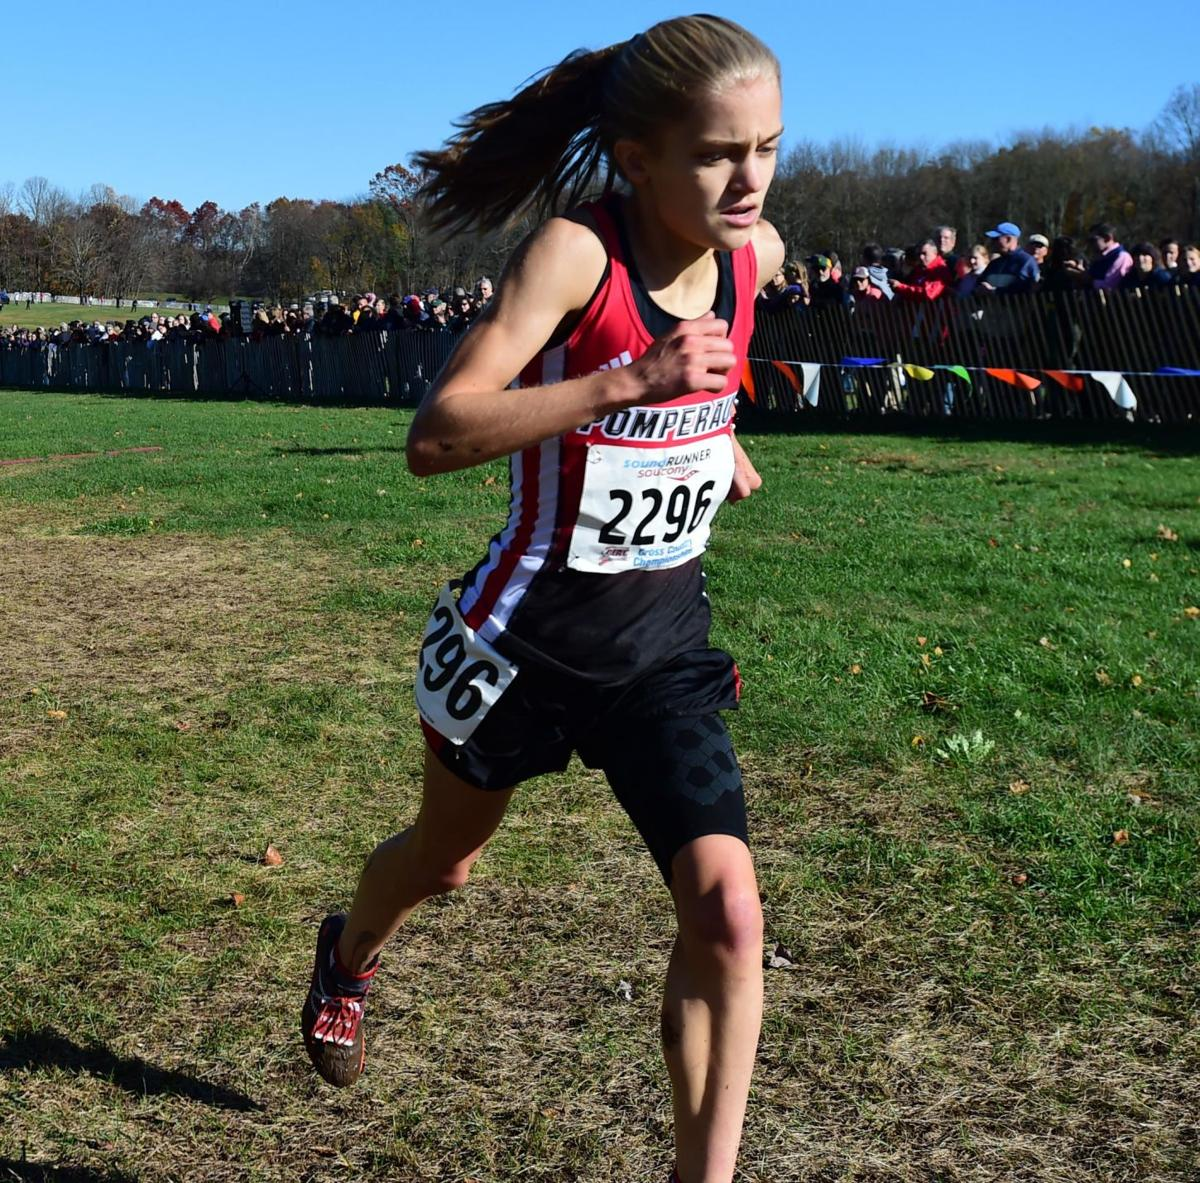 Pomperaug's Wiser, Conard's Sherry earn All-American at nationals